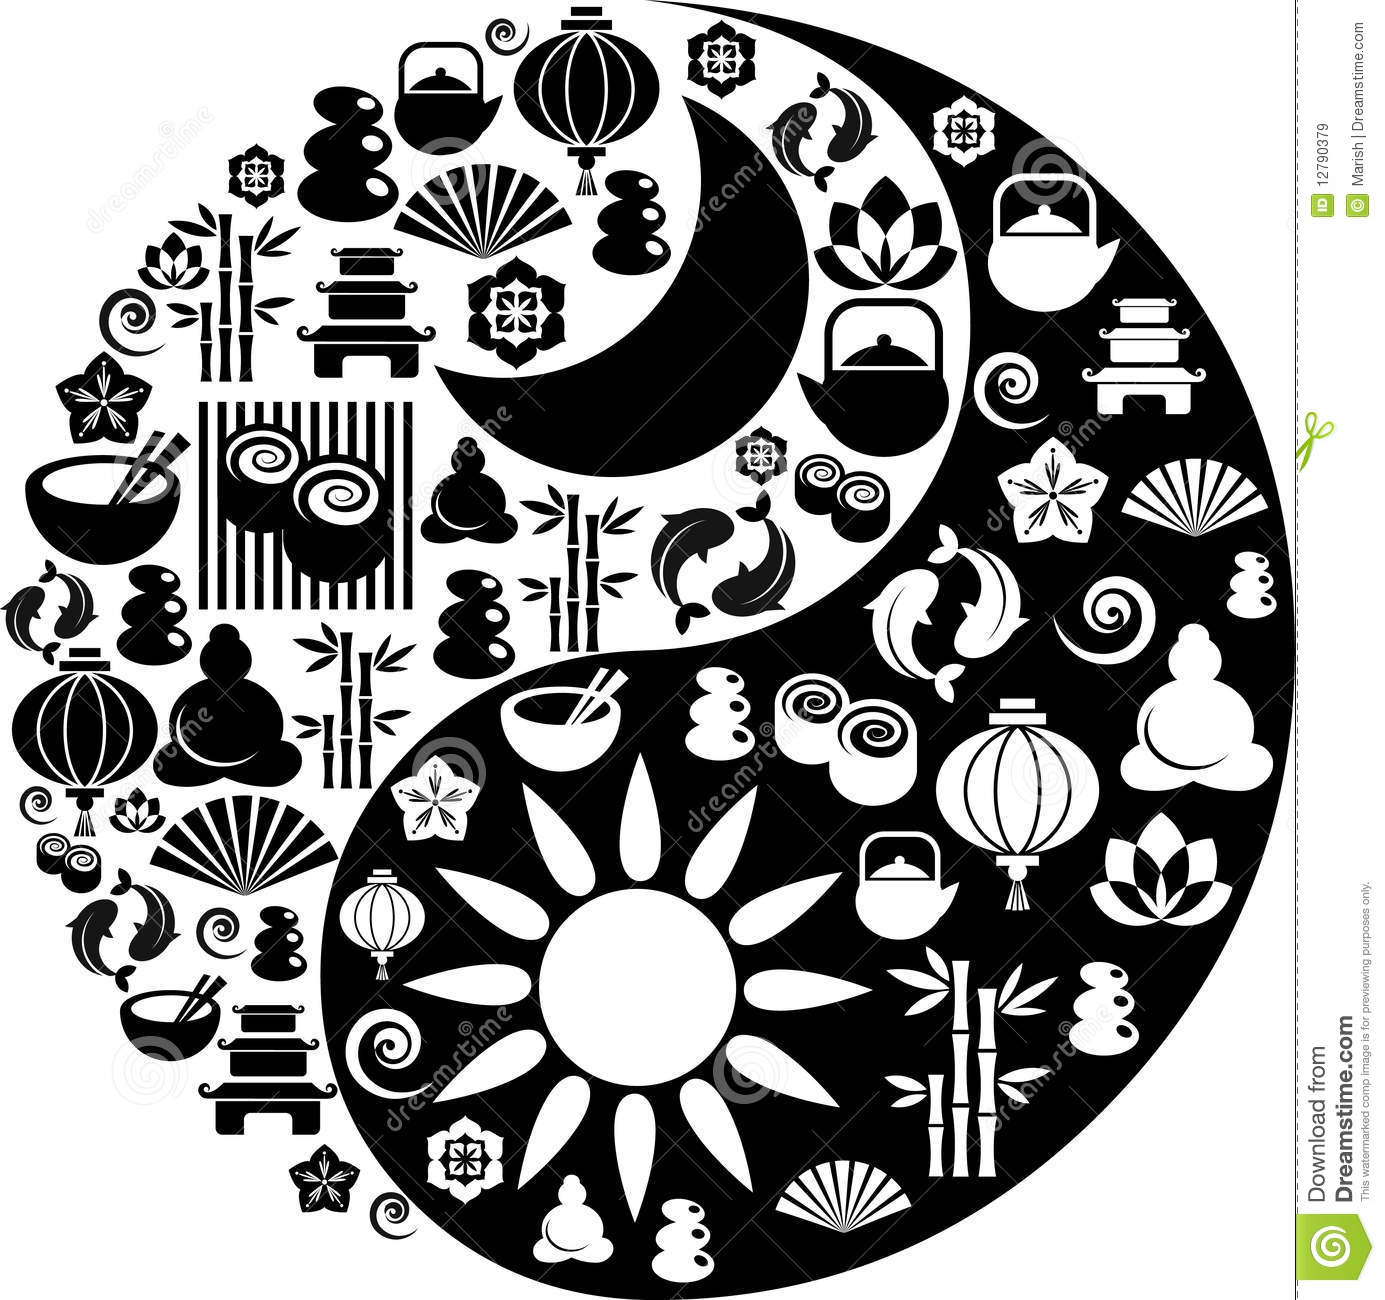 yin yang symbol made from zen icons royalty free stock